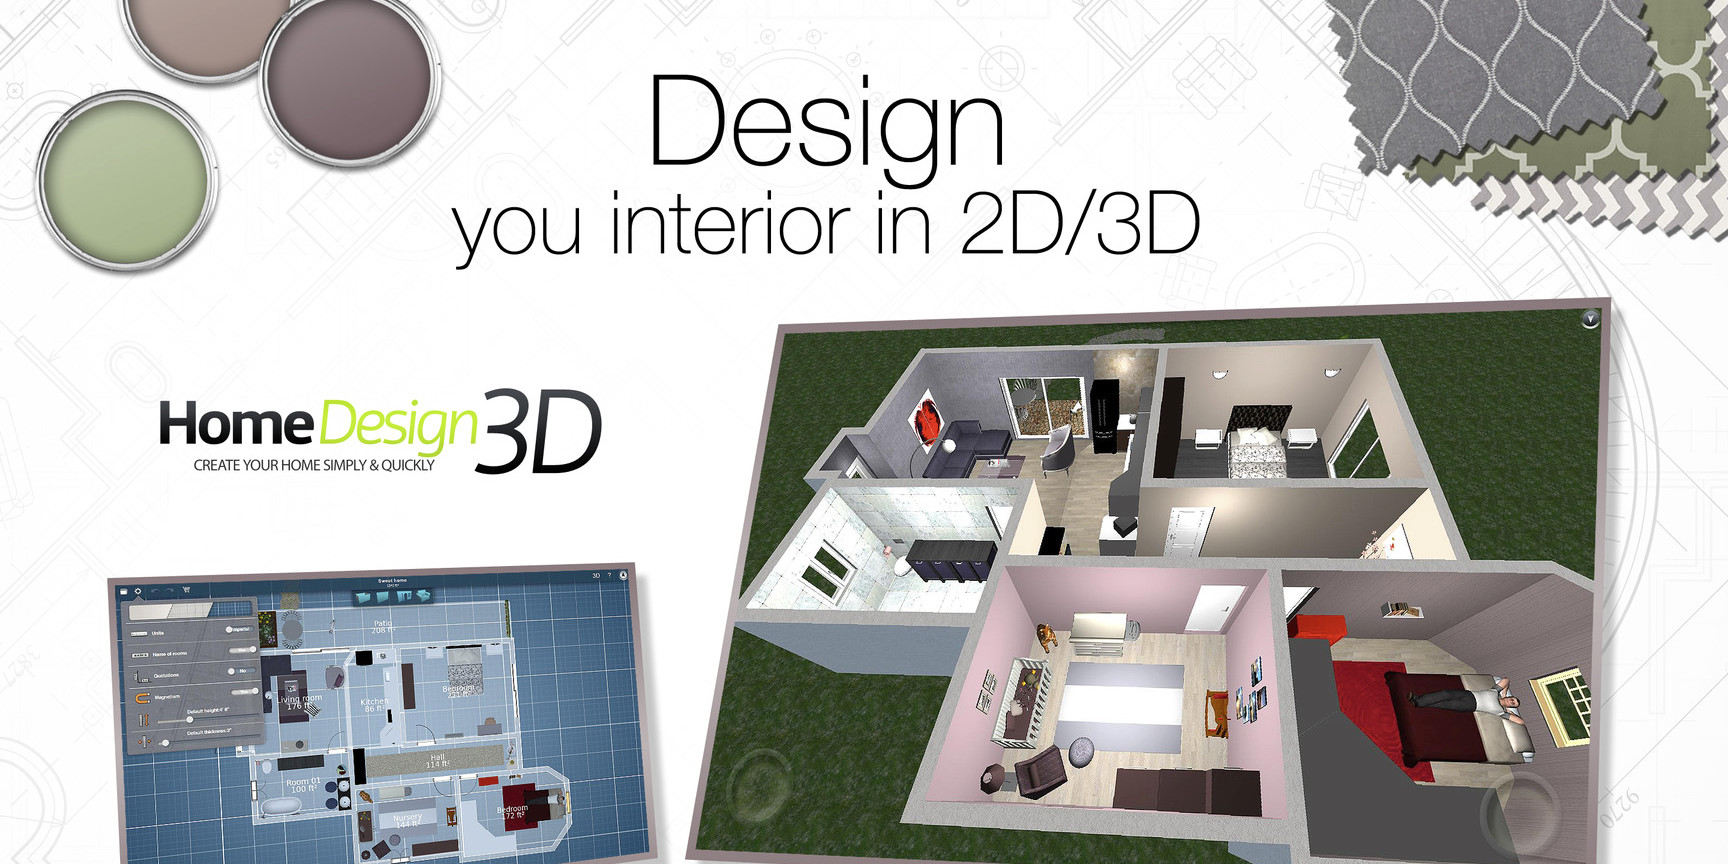 Home Designer 3D For IOS/Mac Goes Free For The First Time